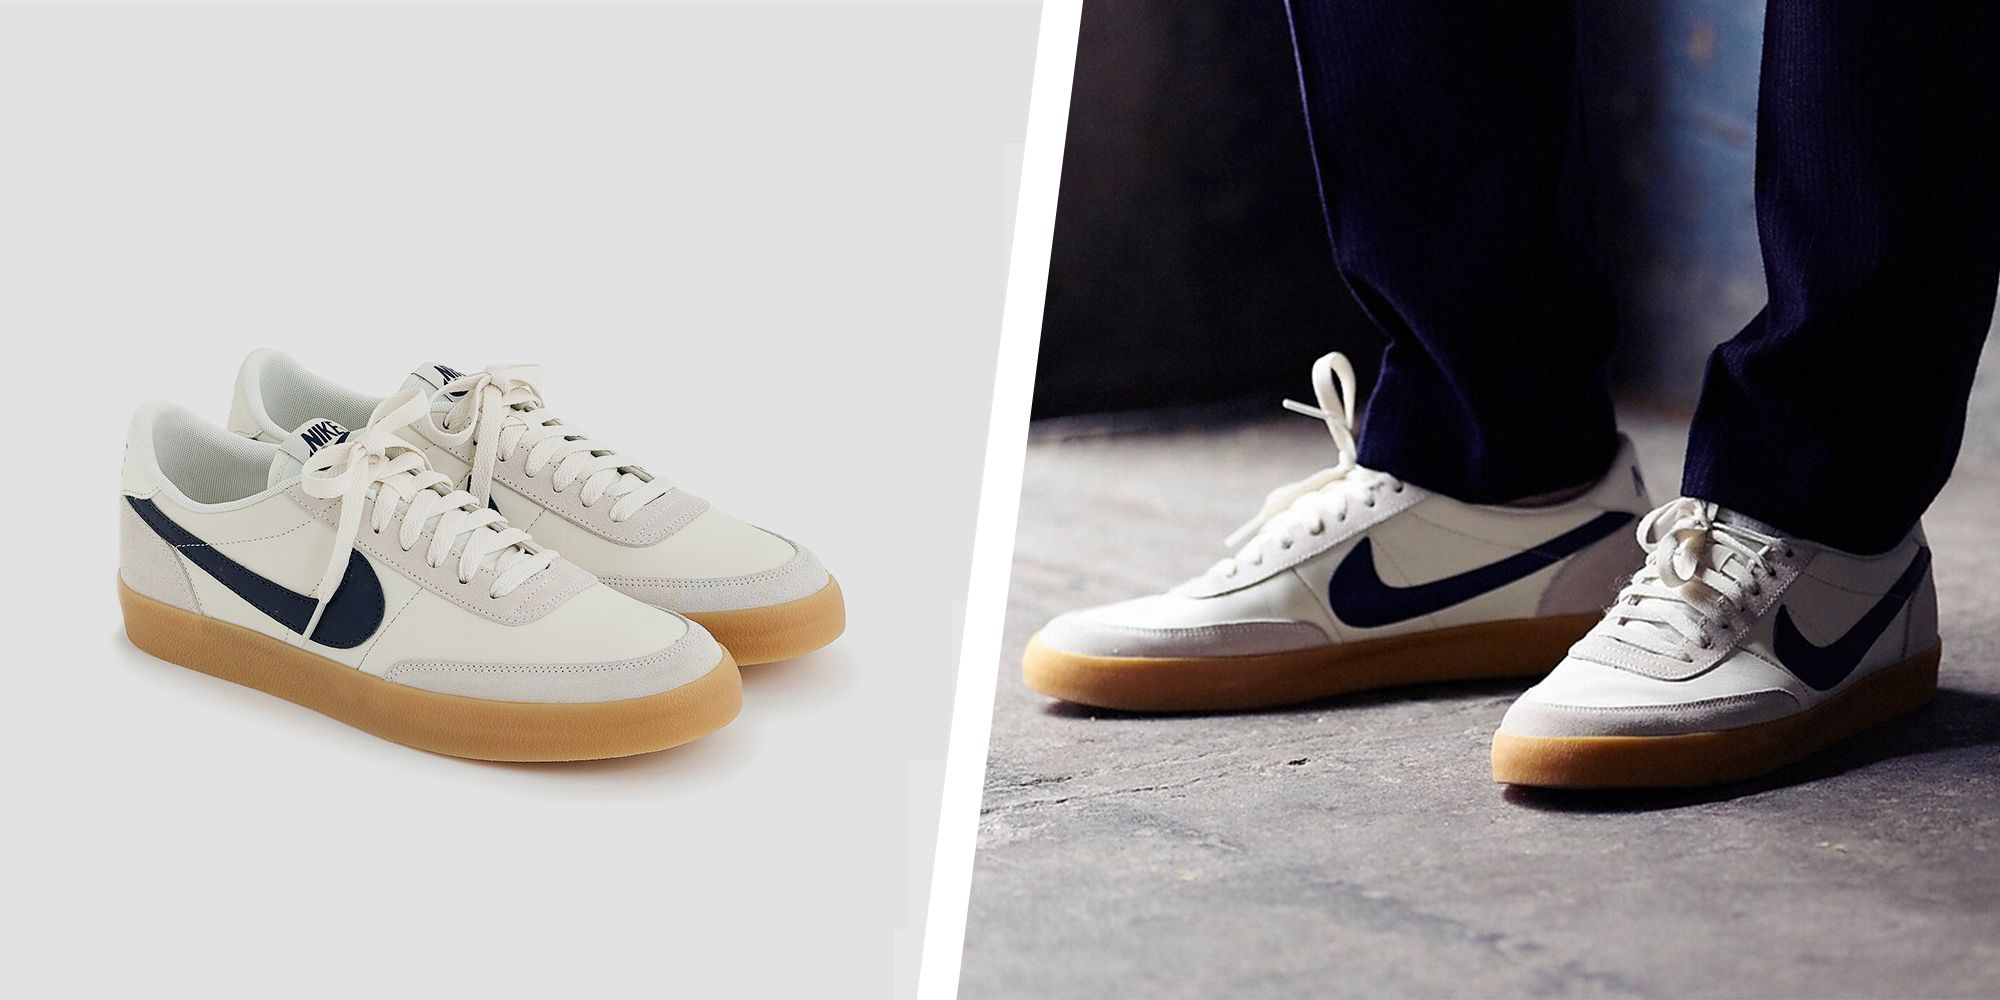 eternamente Espíritu Destino  J.Crew Restocked the Best-Selling Nike KillShot 2 Sneakers